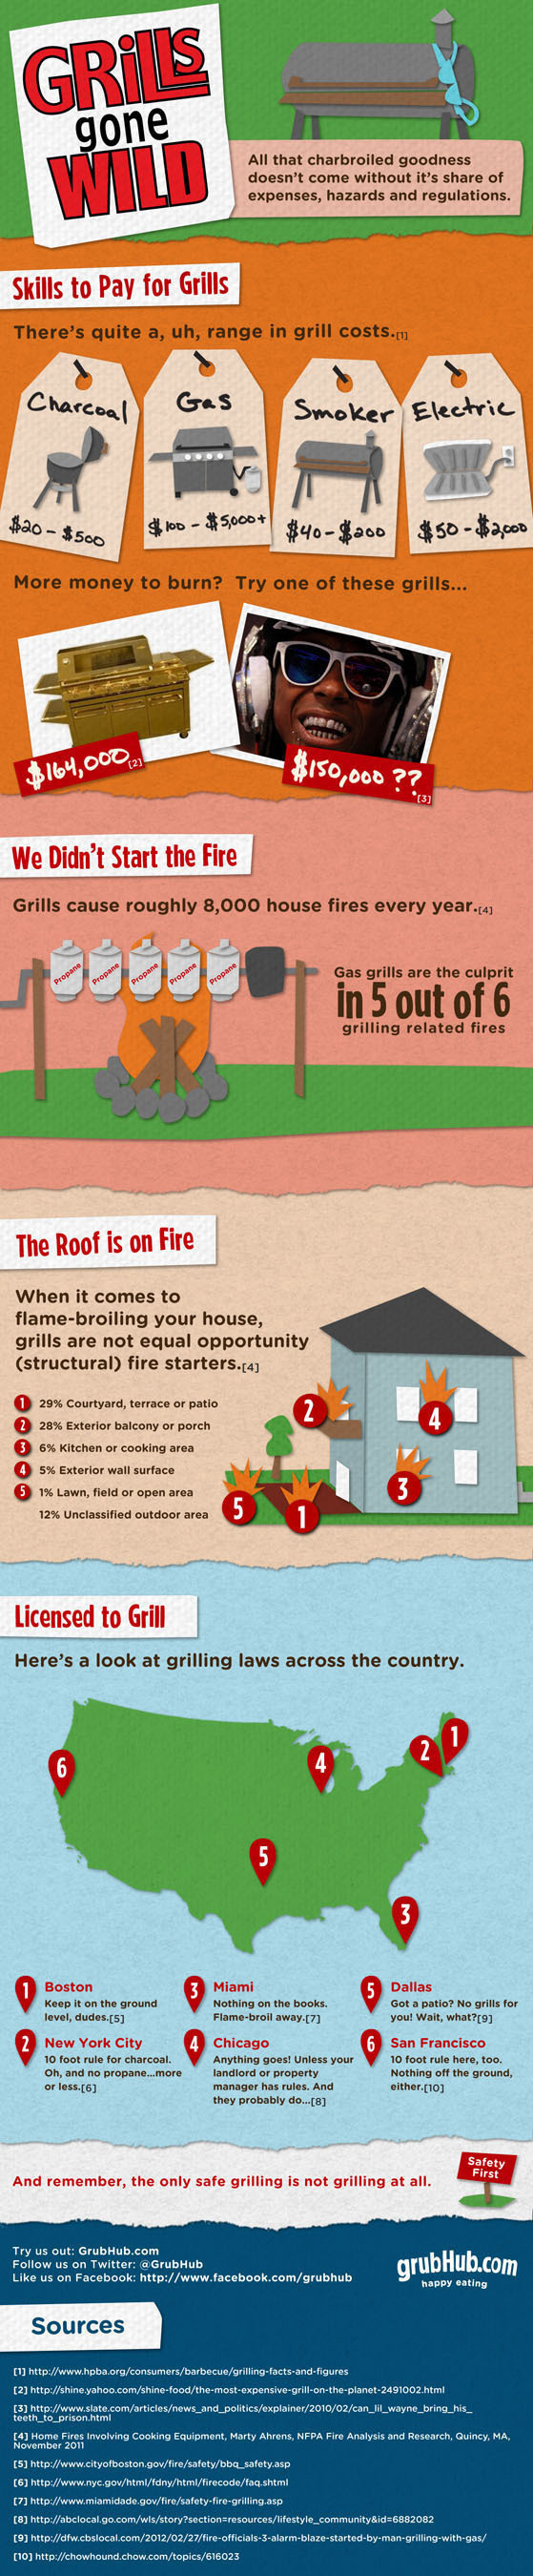 Grills Gone Wild! All that charbroiled goodness doesn't come without its share of expenses, hazards and ...